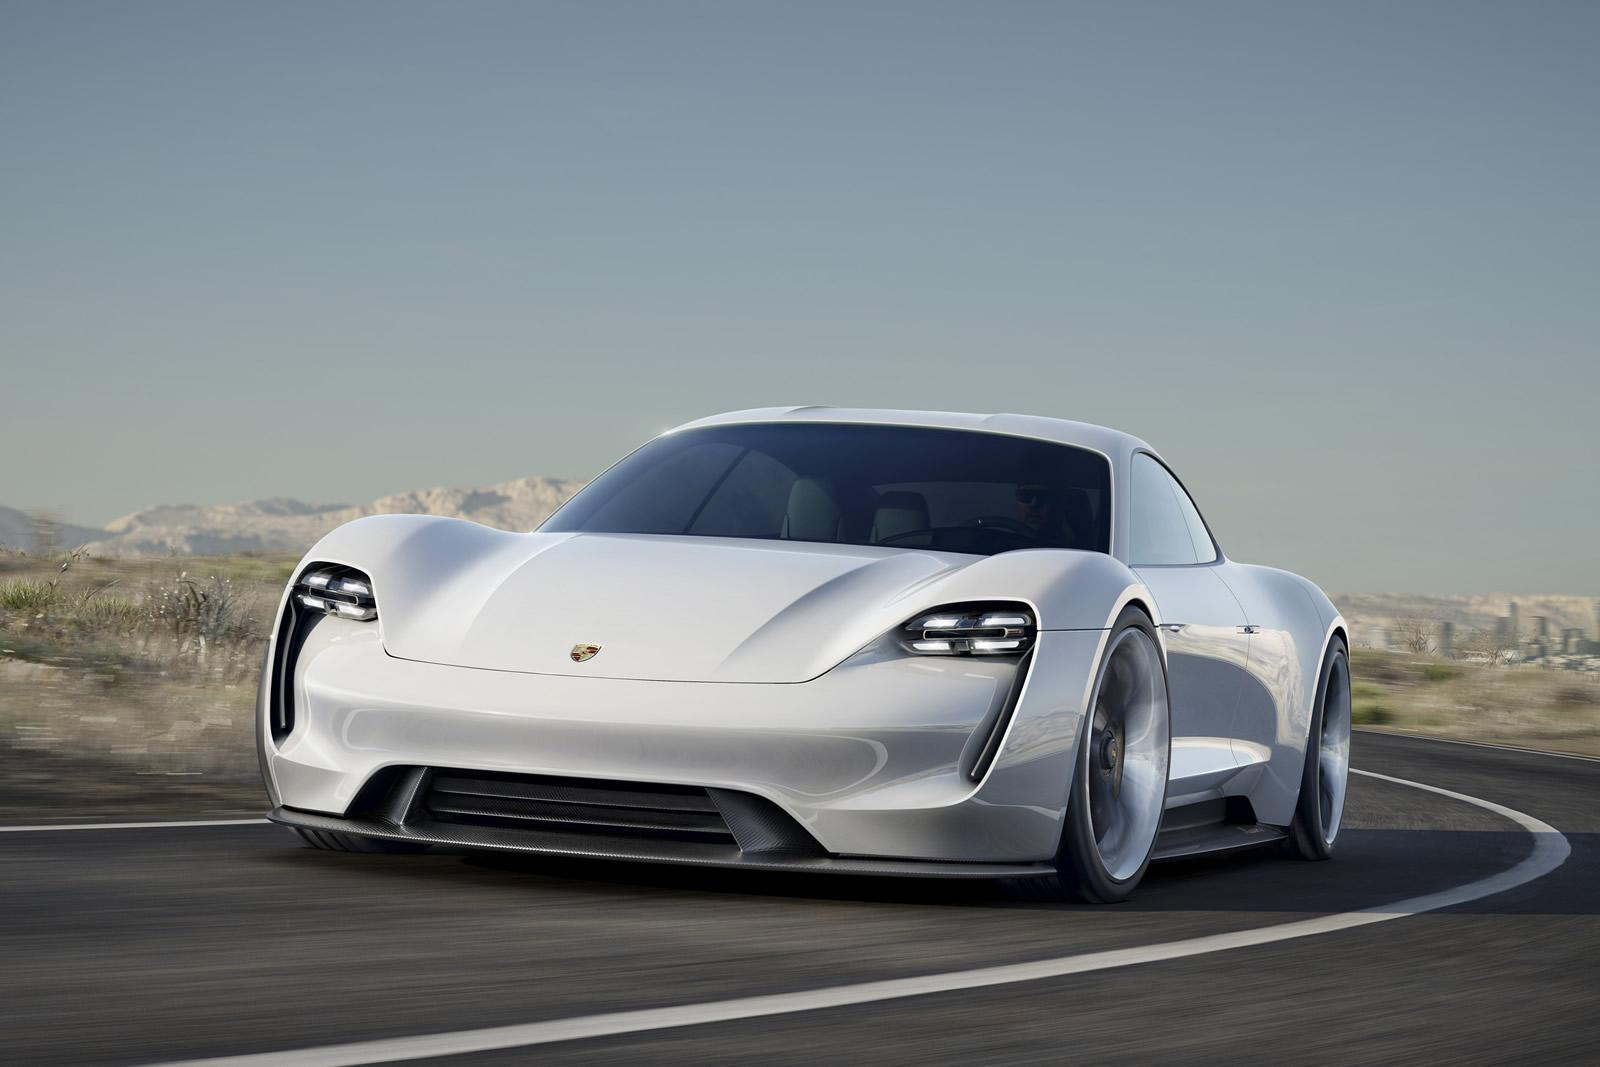 Porsche Pledges $9.4 Billion Investment In Electrification Technology